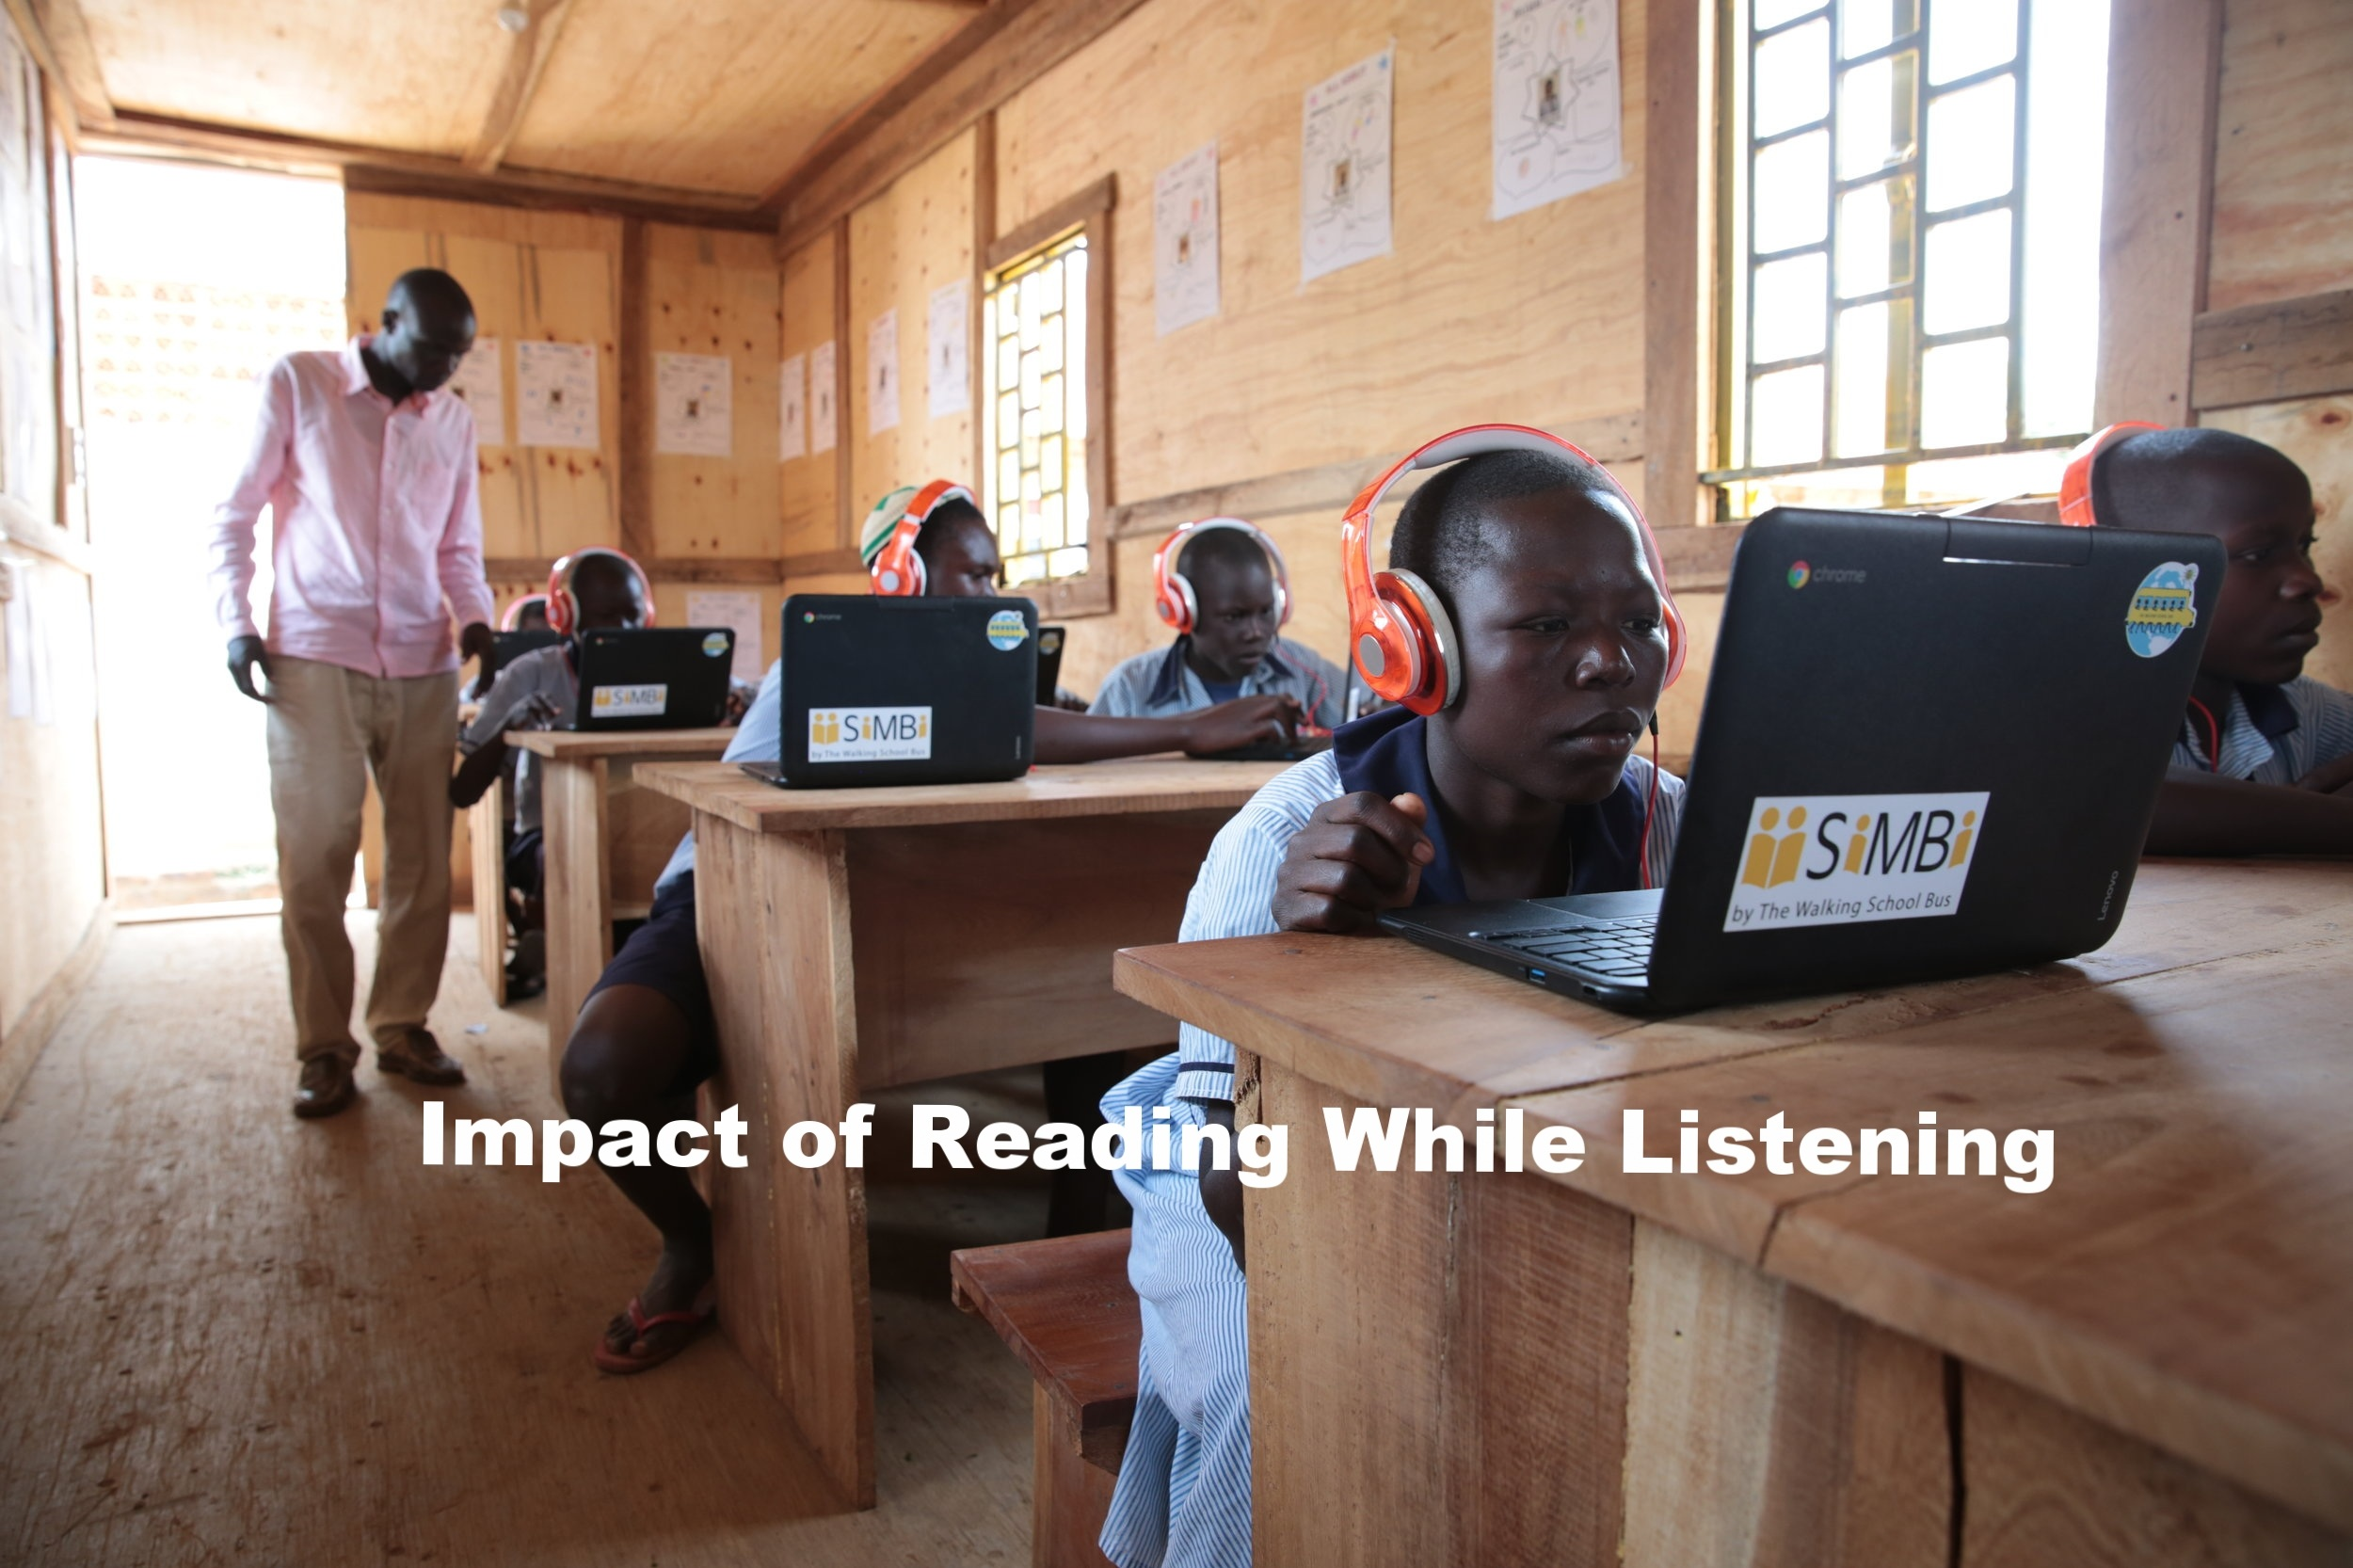 Impact of Reading While Listening